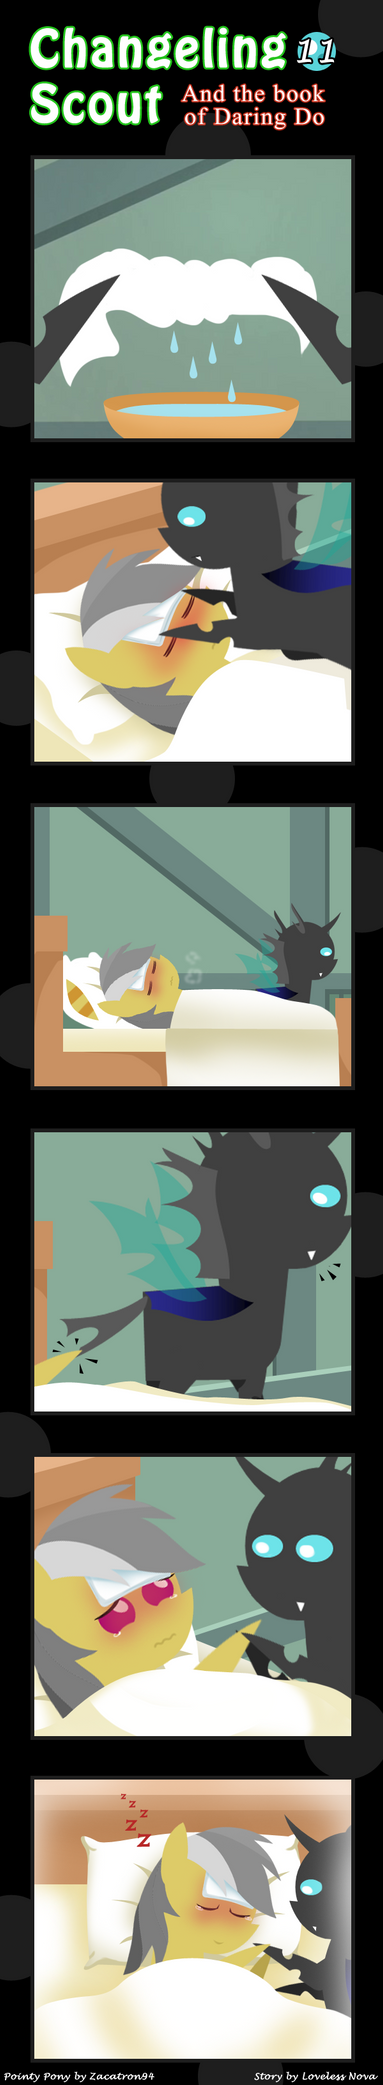 Changeling Scout And The Book Of Daring Do 11 by vavacung